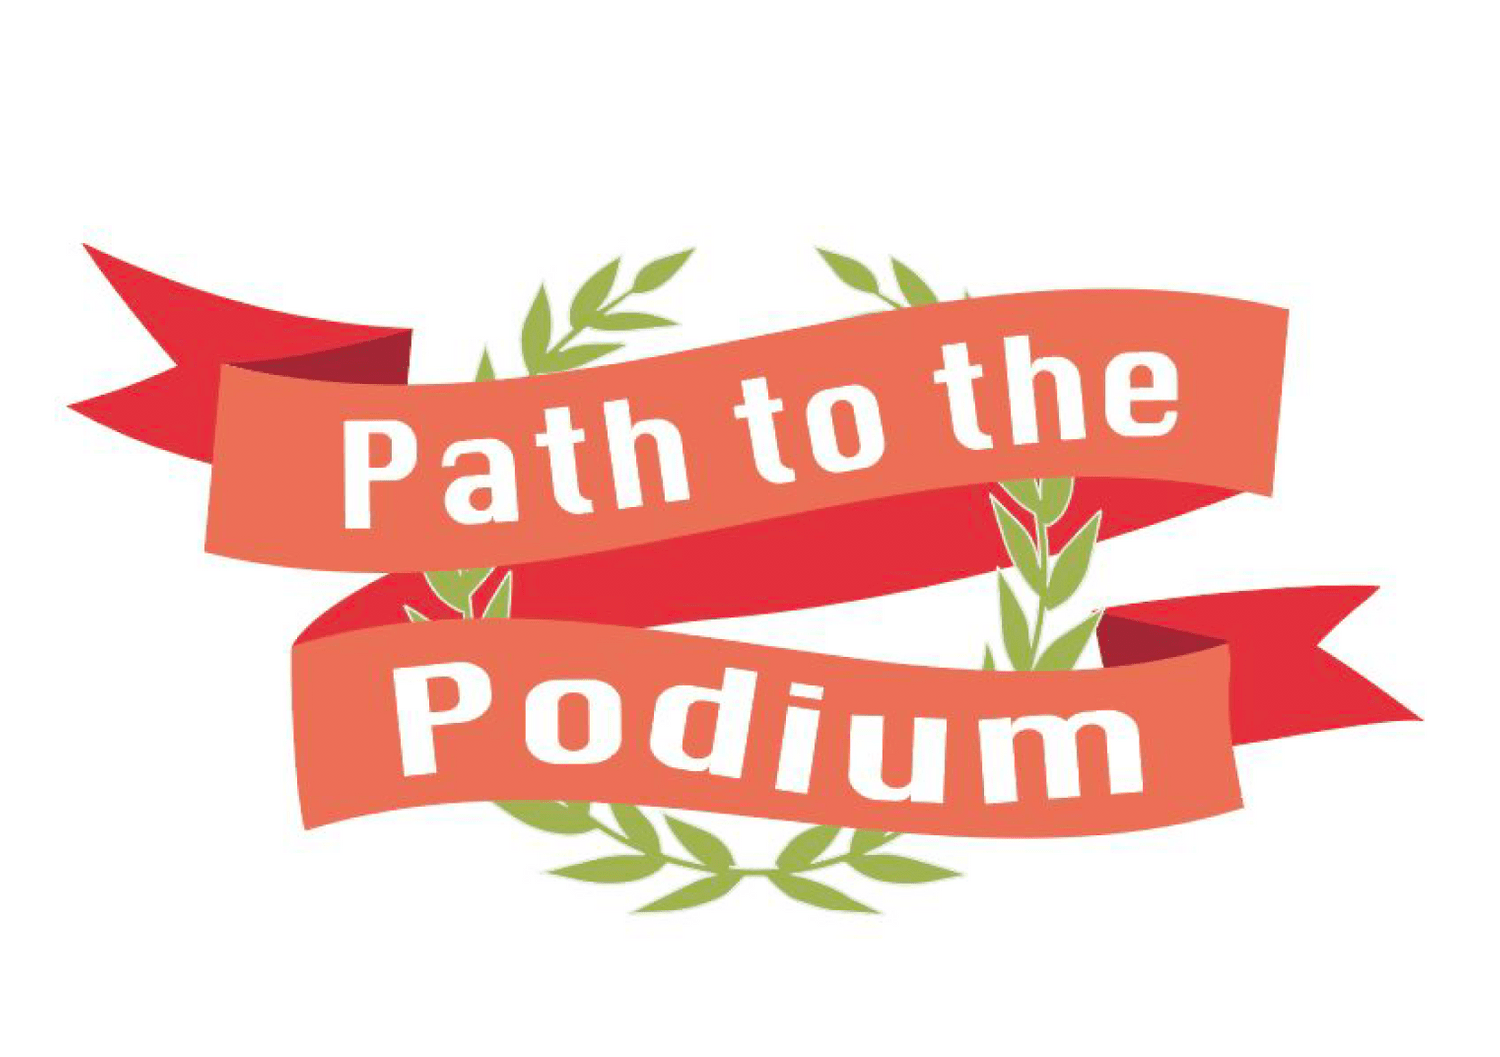 Brand identity for the Path to the Podium board game.